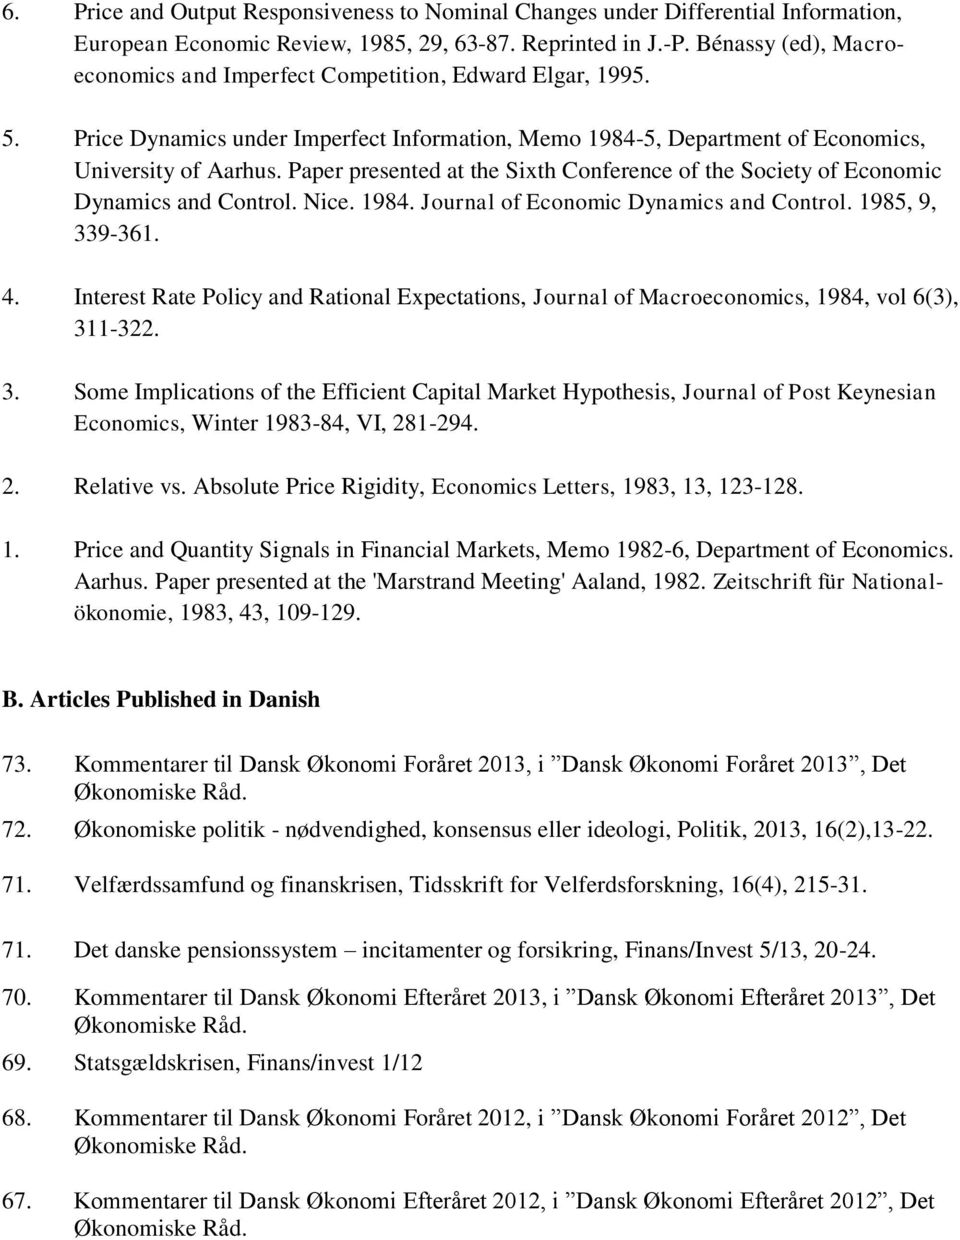 Paper presented at the Sixth Conference of the Society of Economic Dynamics and Control. Nice. 1984. Journal of Economic Dynamics and Control. 1985, 9, 339-361. 4.